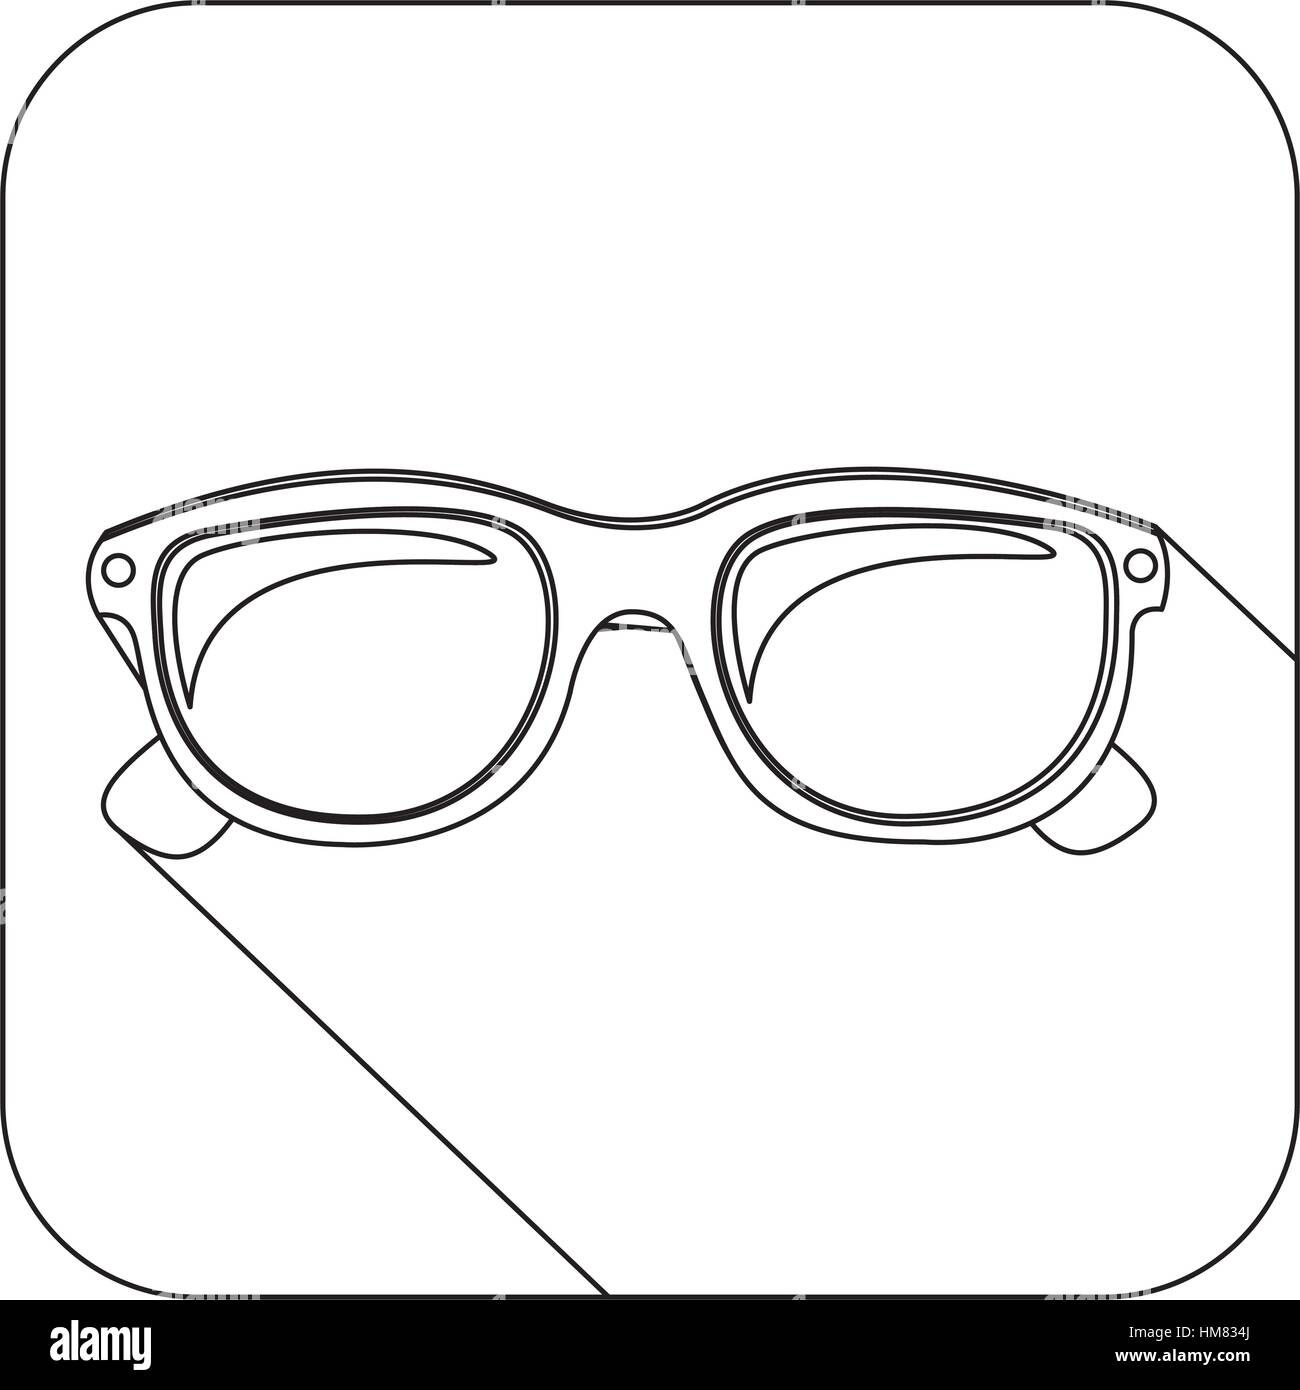 73f3bc4803b square shape with silhouette oval glasses lens vector illustration ...